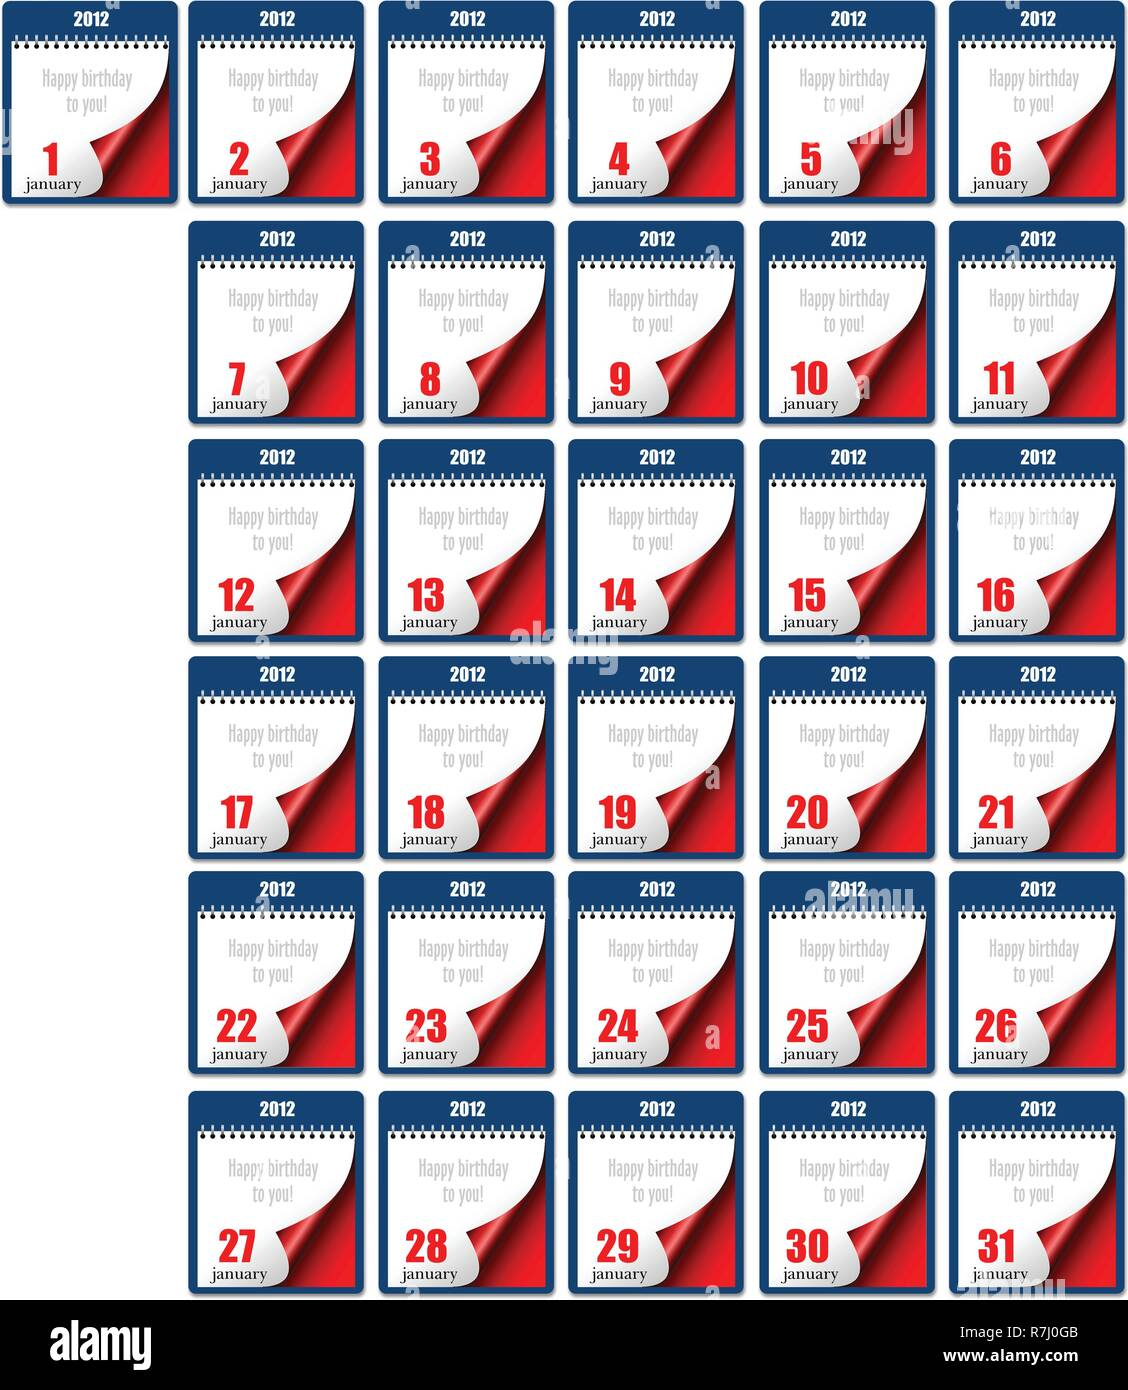 Tear-off Calendar 2012. Each day of January. Happy birthday to you! Vector illustration - Stock Image